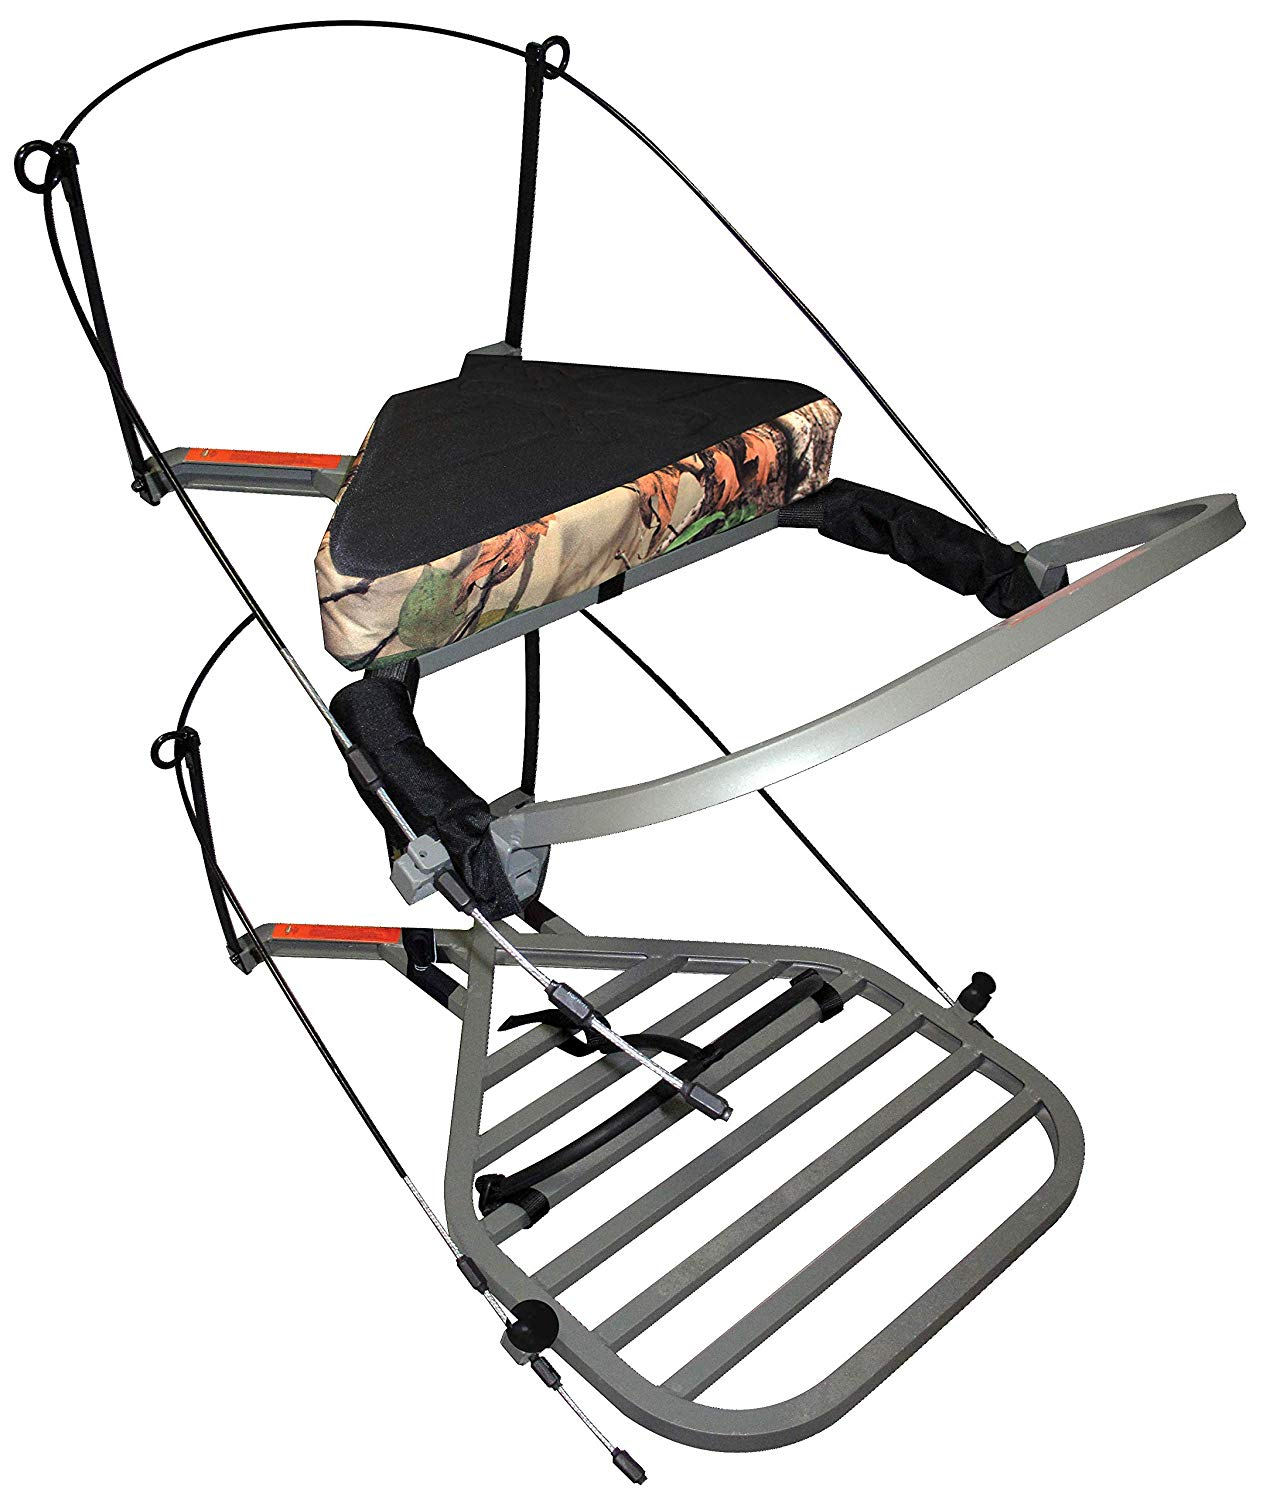 Top 10 Best Climbing Tree Stand 2020 Reviews For The Money 7